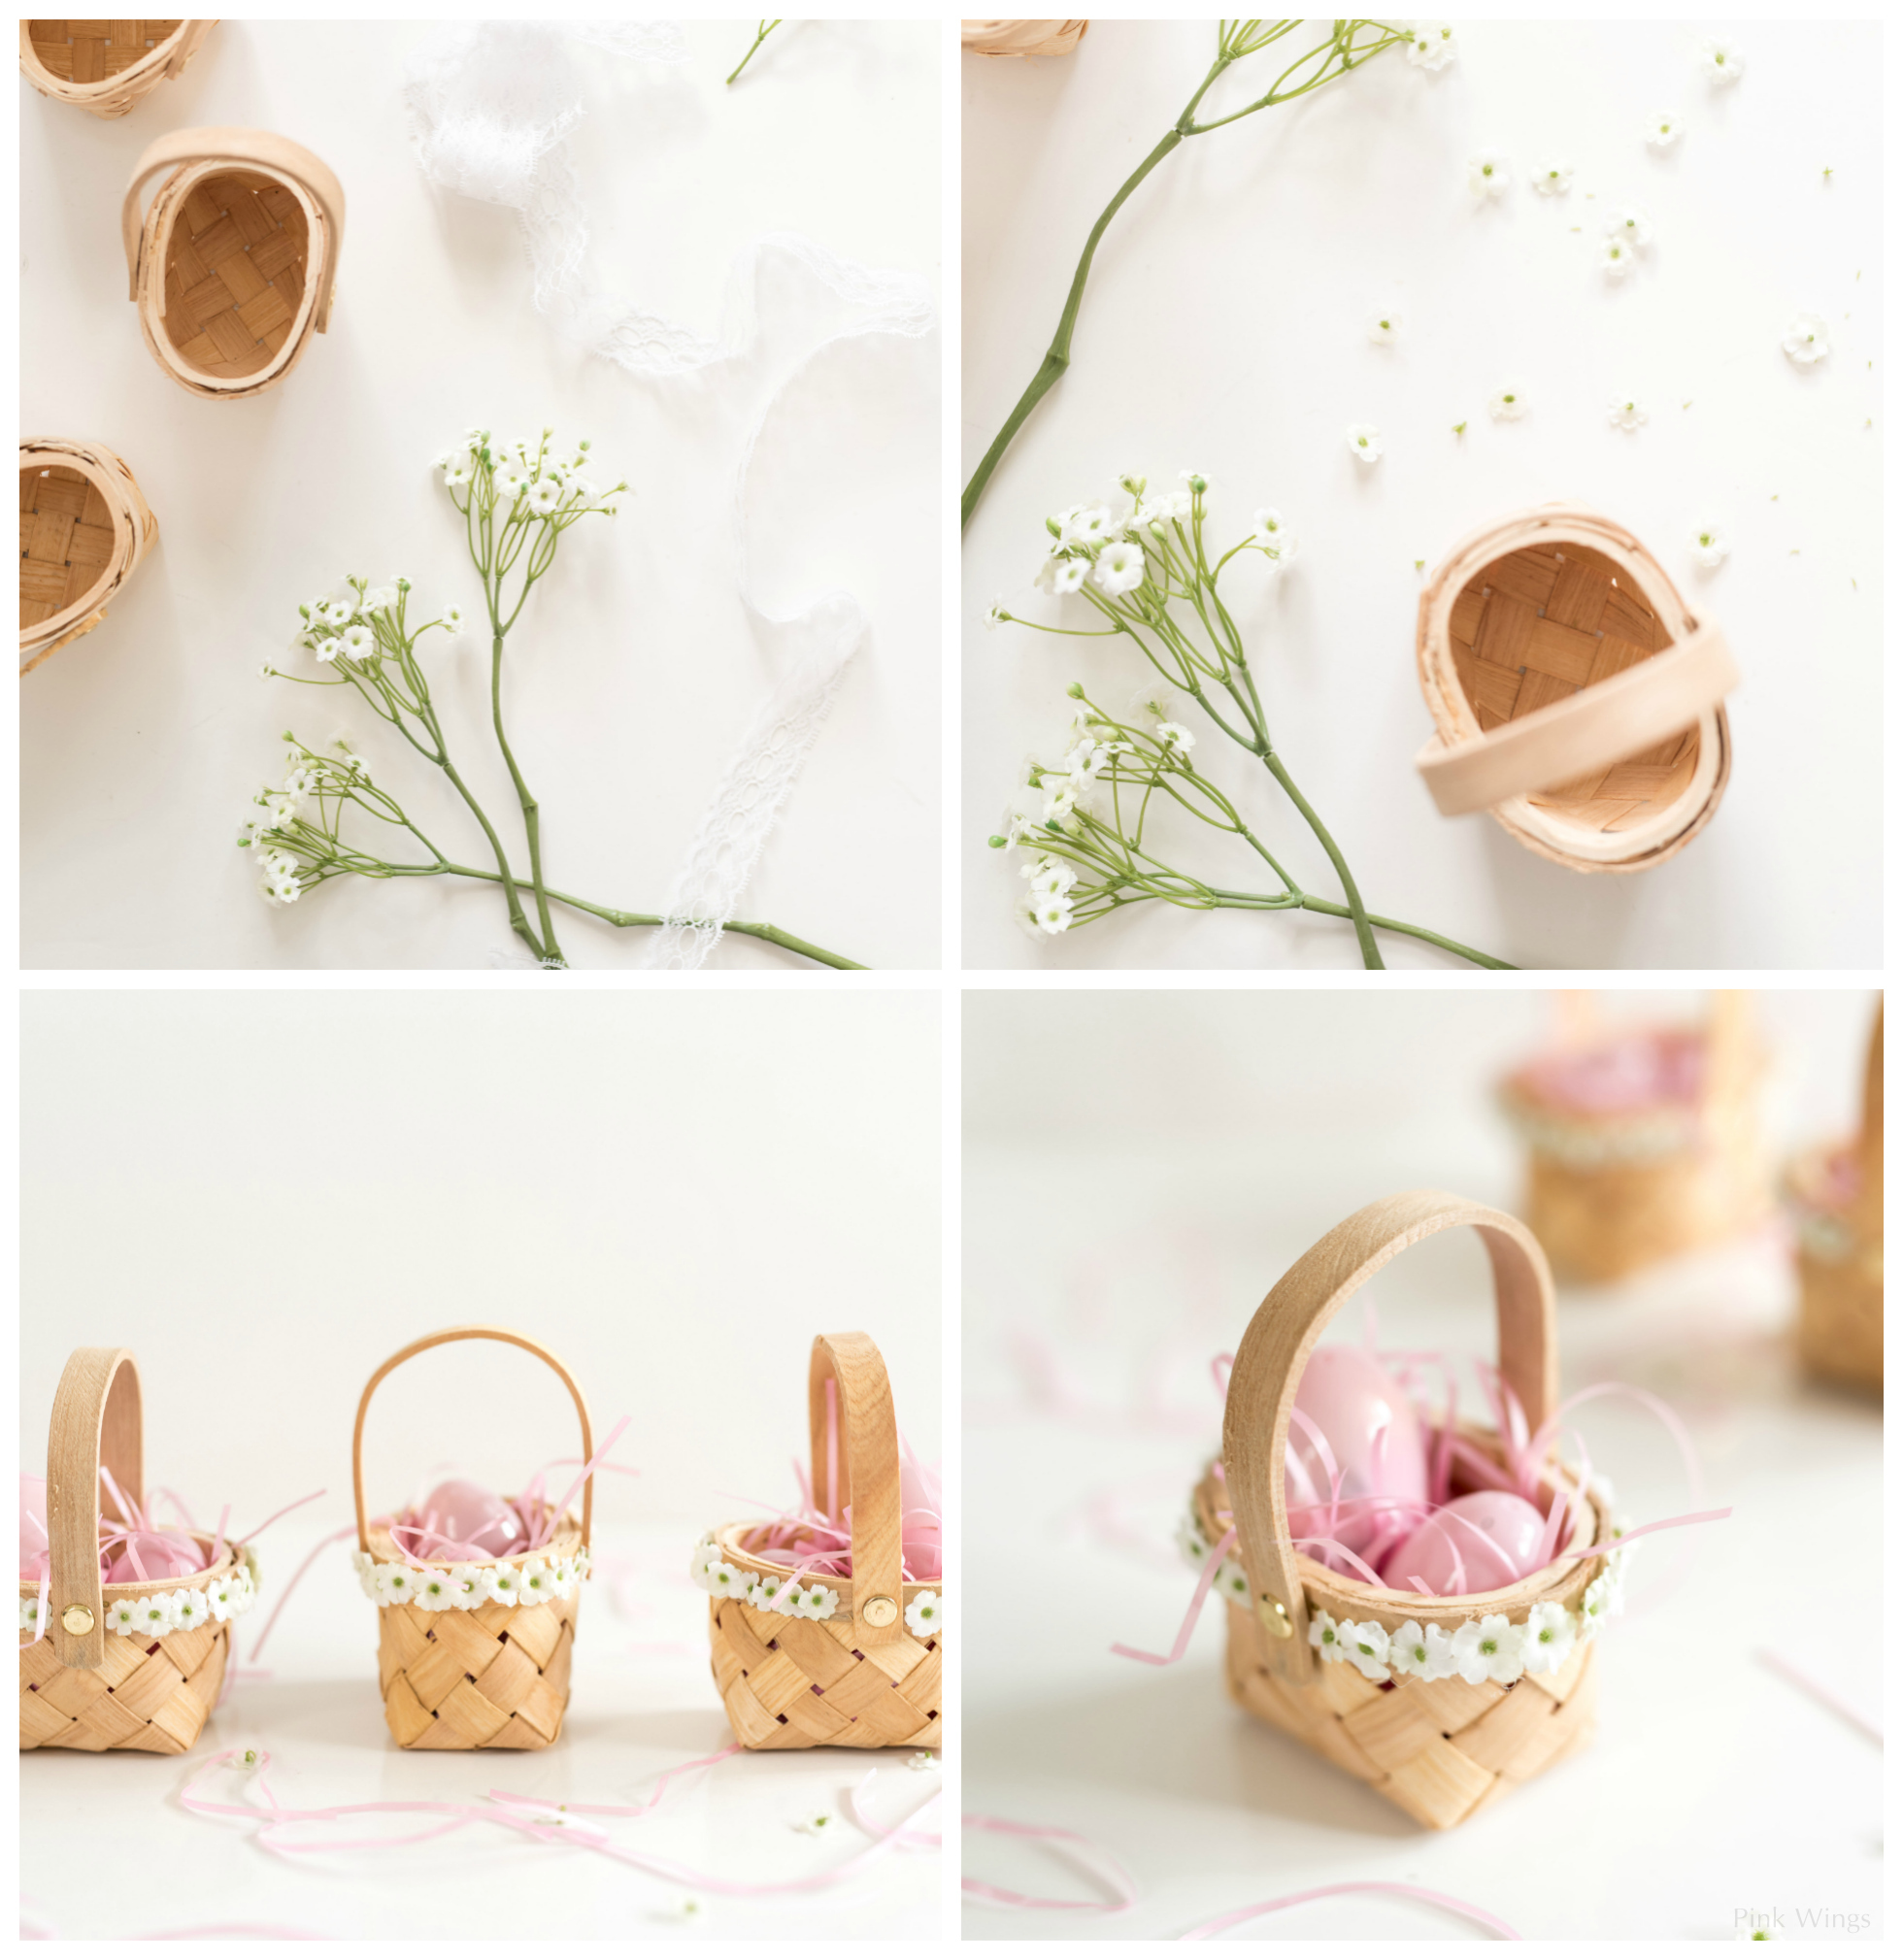 Easter surprise cookies mini flower baskets pink wings easter gift ideas for adults teenagers kinds men friends family negle Choice Image